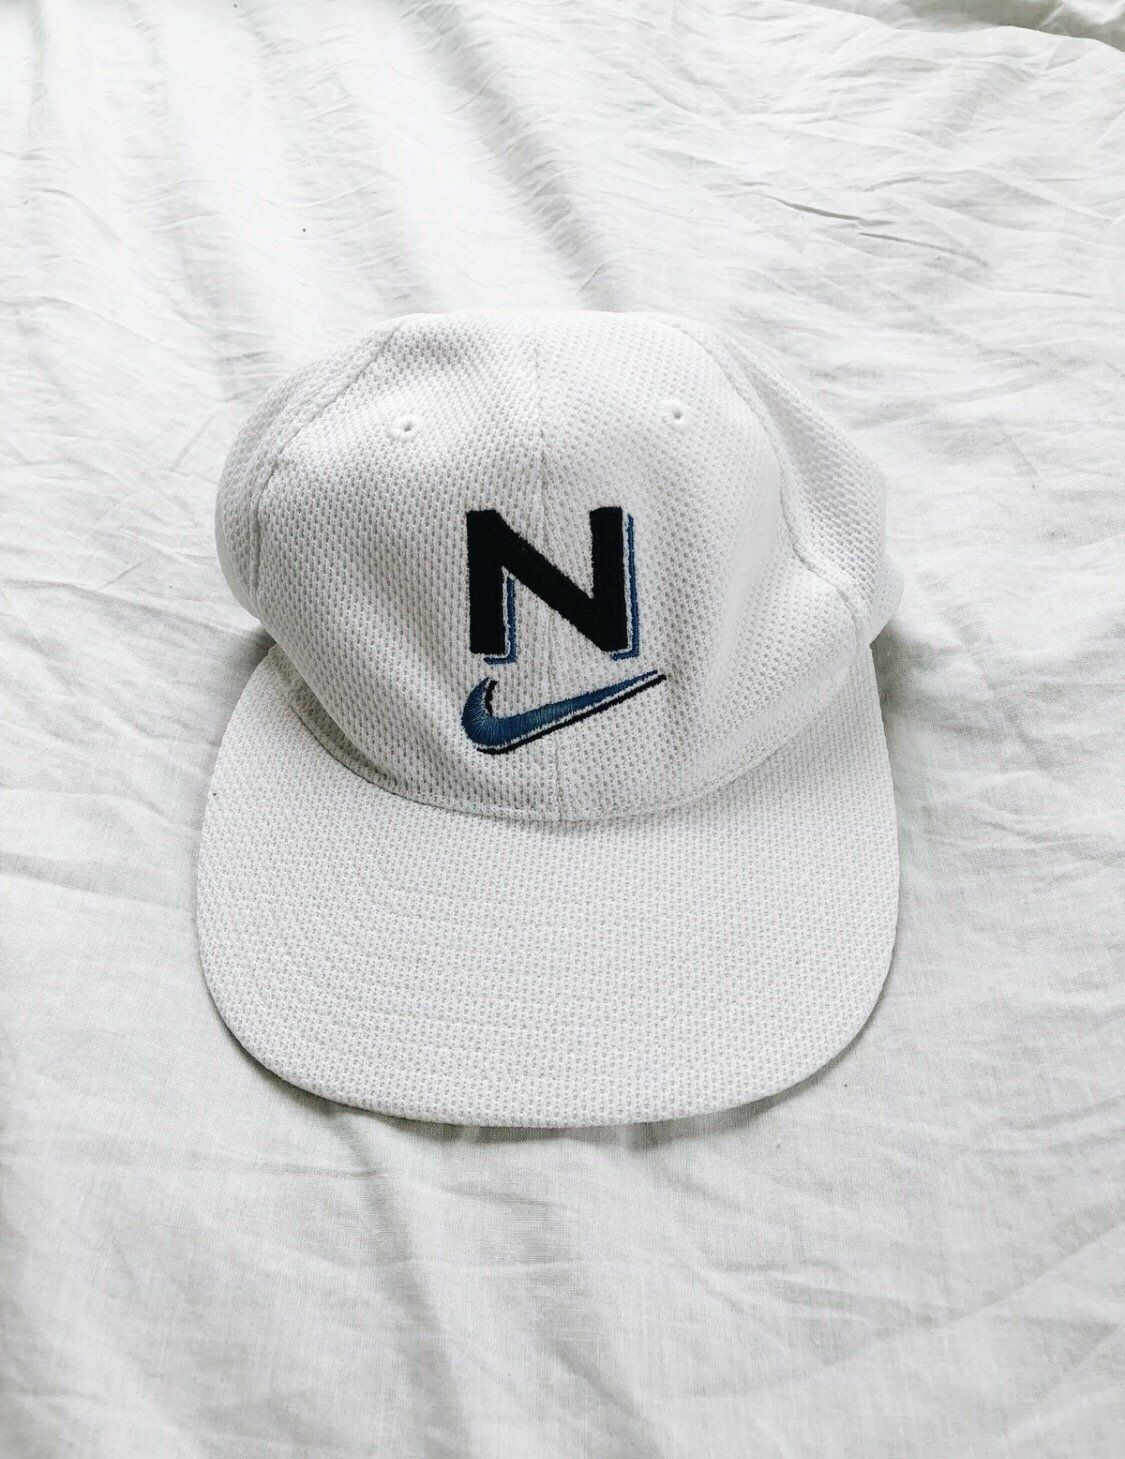 0d7b5d94fe2 Excited to share the latest addition to my  etsy shop  Rare Nike Hat VTG